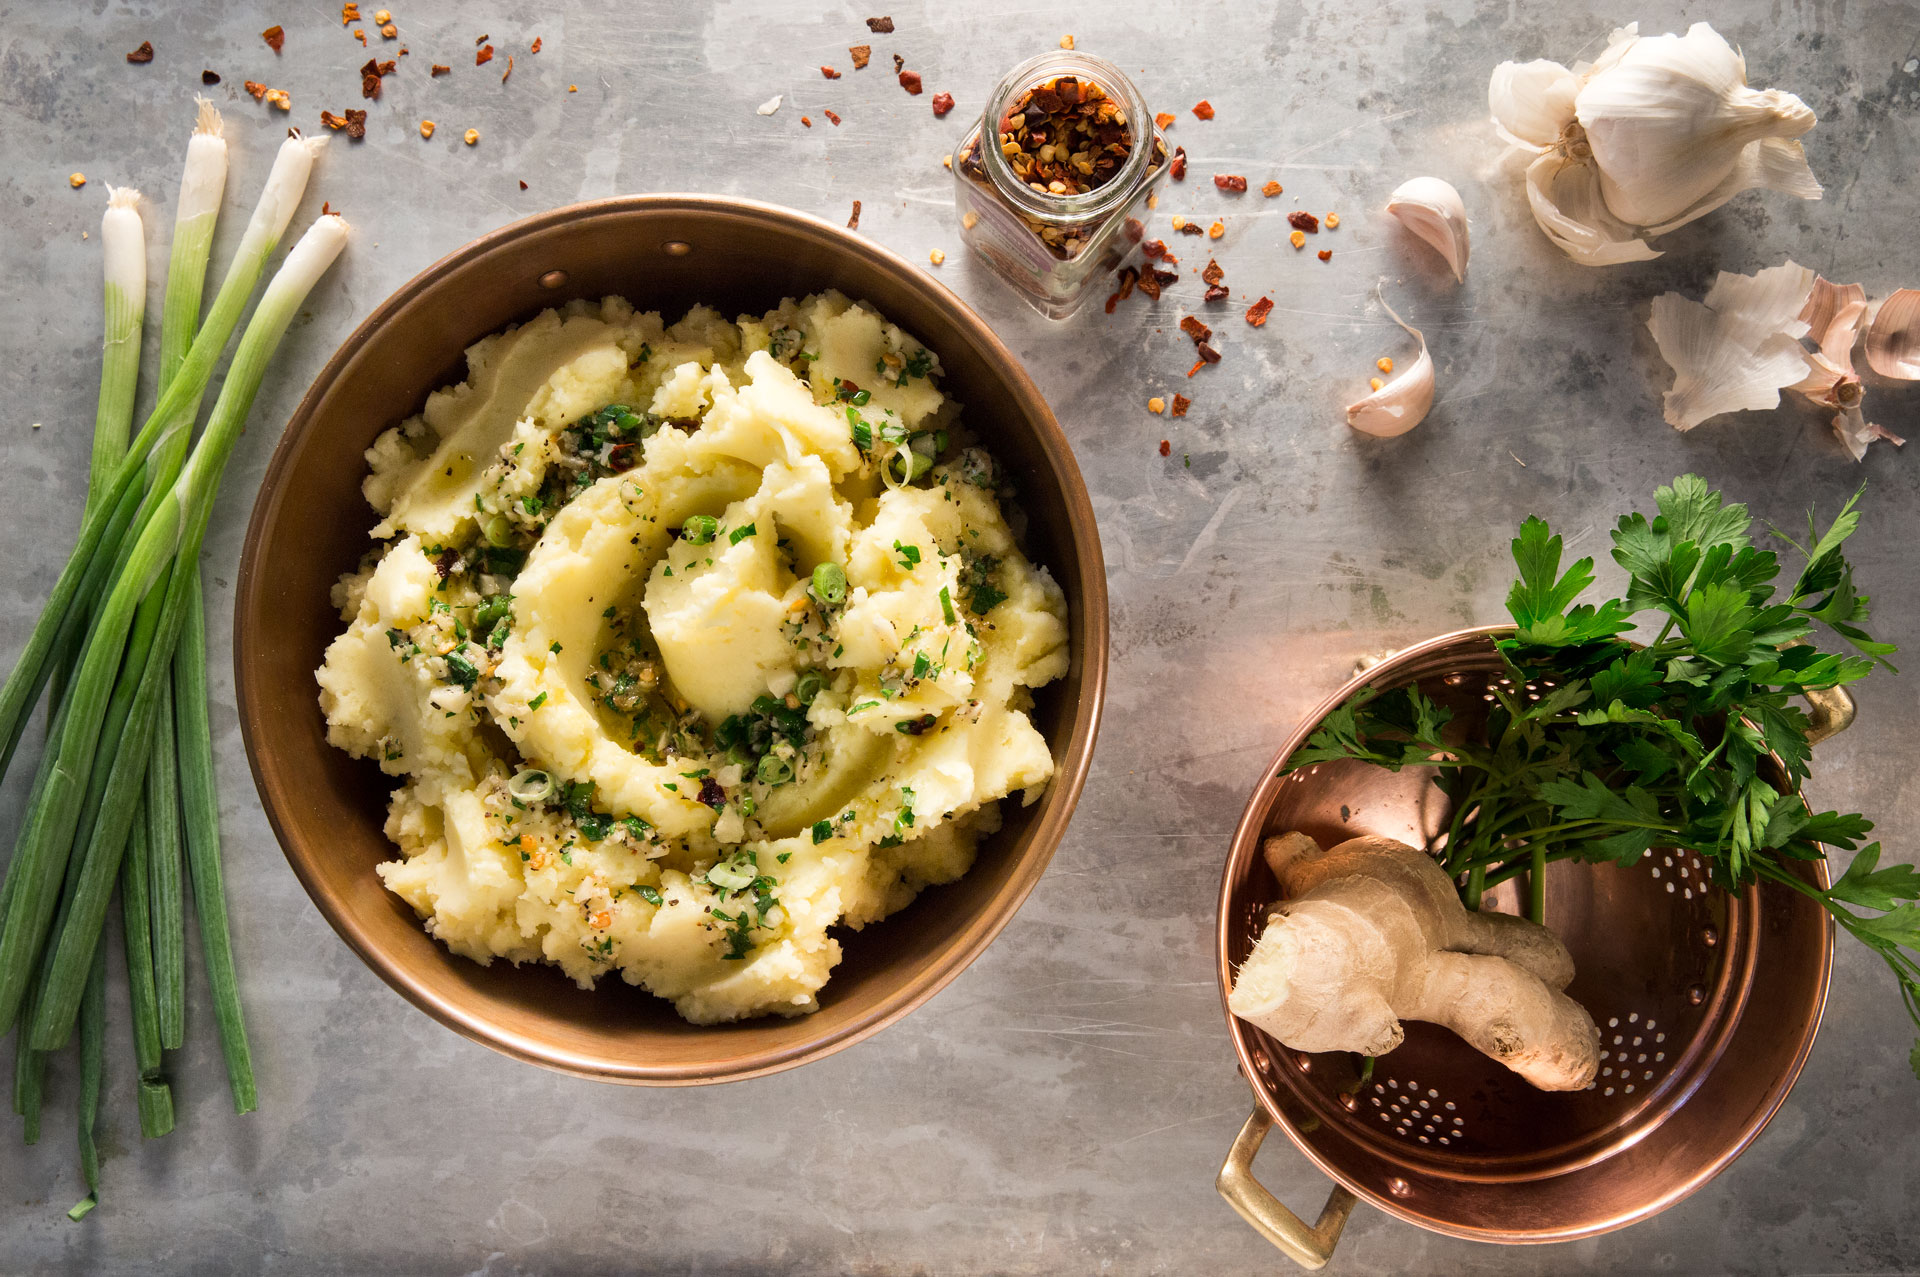 We added the bold craveable flavor combination of olive oil-sautéed garlic, aromatic fresh ginger and crushed red pepper flakes to mashed Yukon gold potatoes for this new fall take on a comfort food classic.